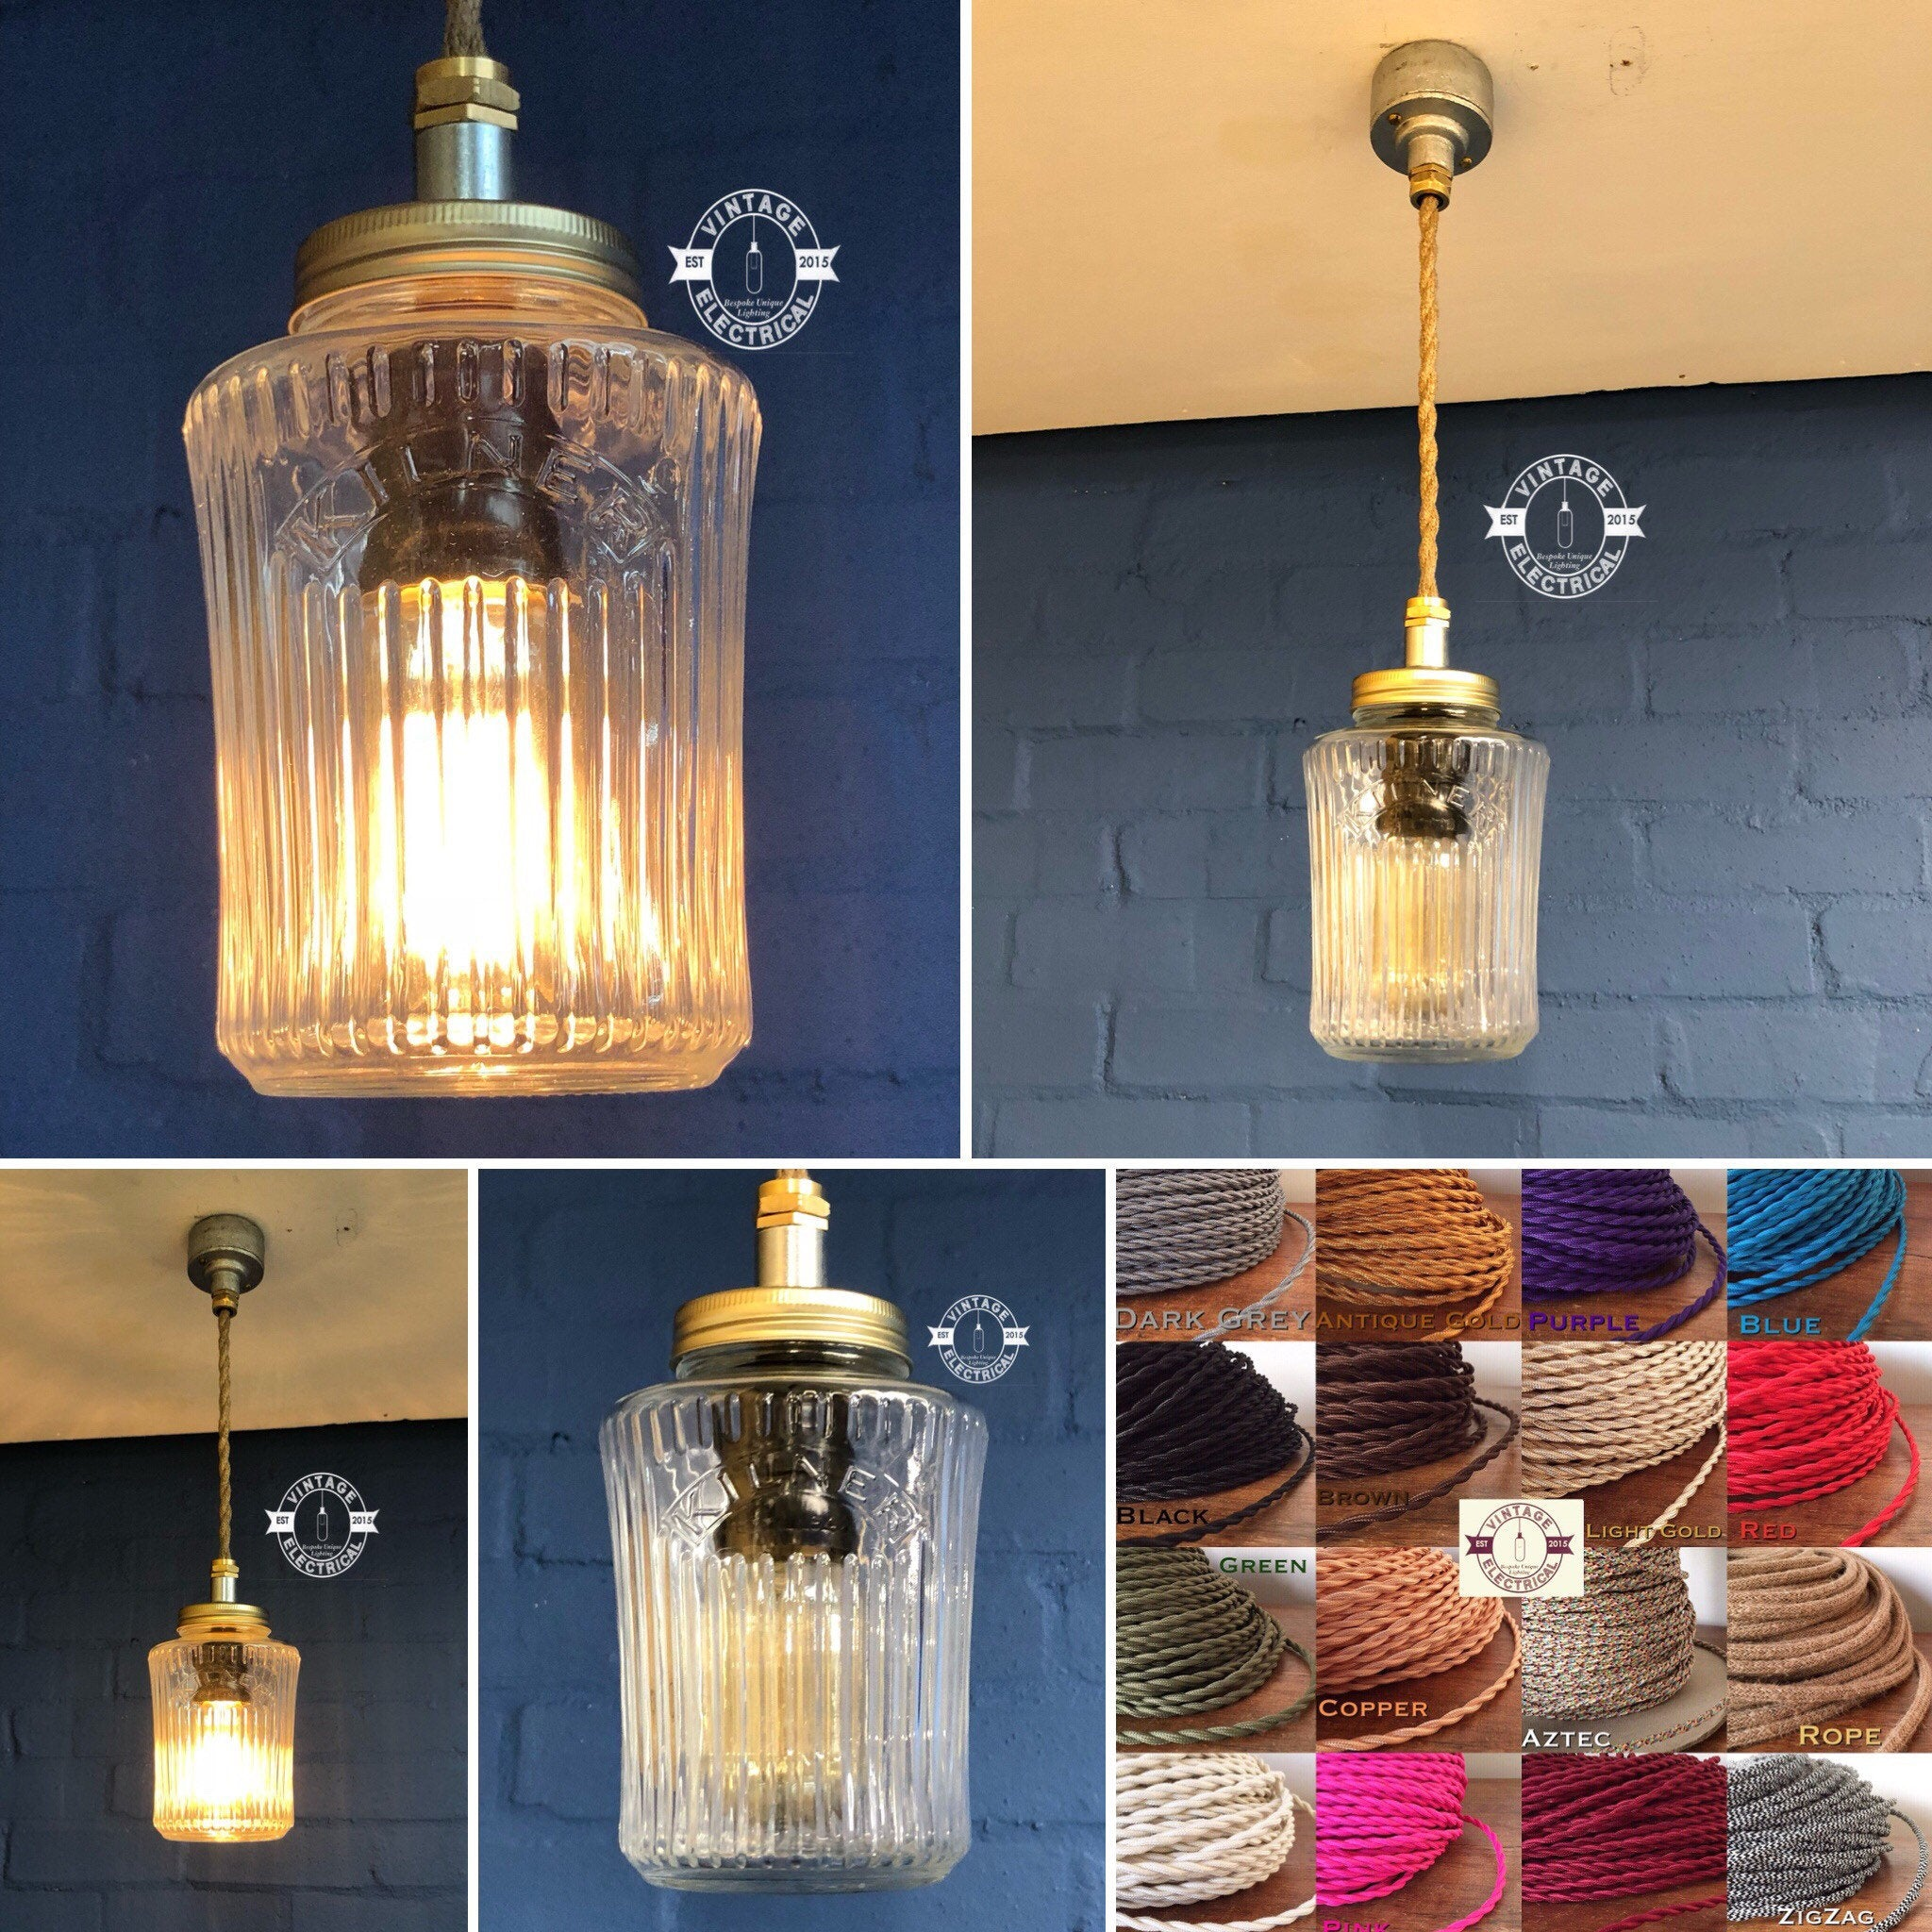 The Kilner Vintage mason jam jar drop light cable fitting retro vintage lamps metal kitchen pendant